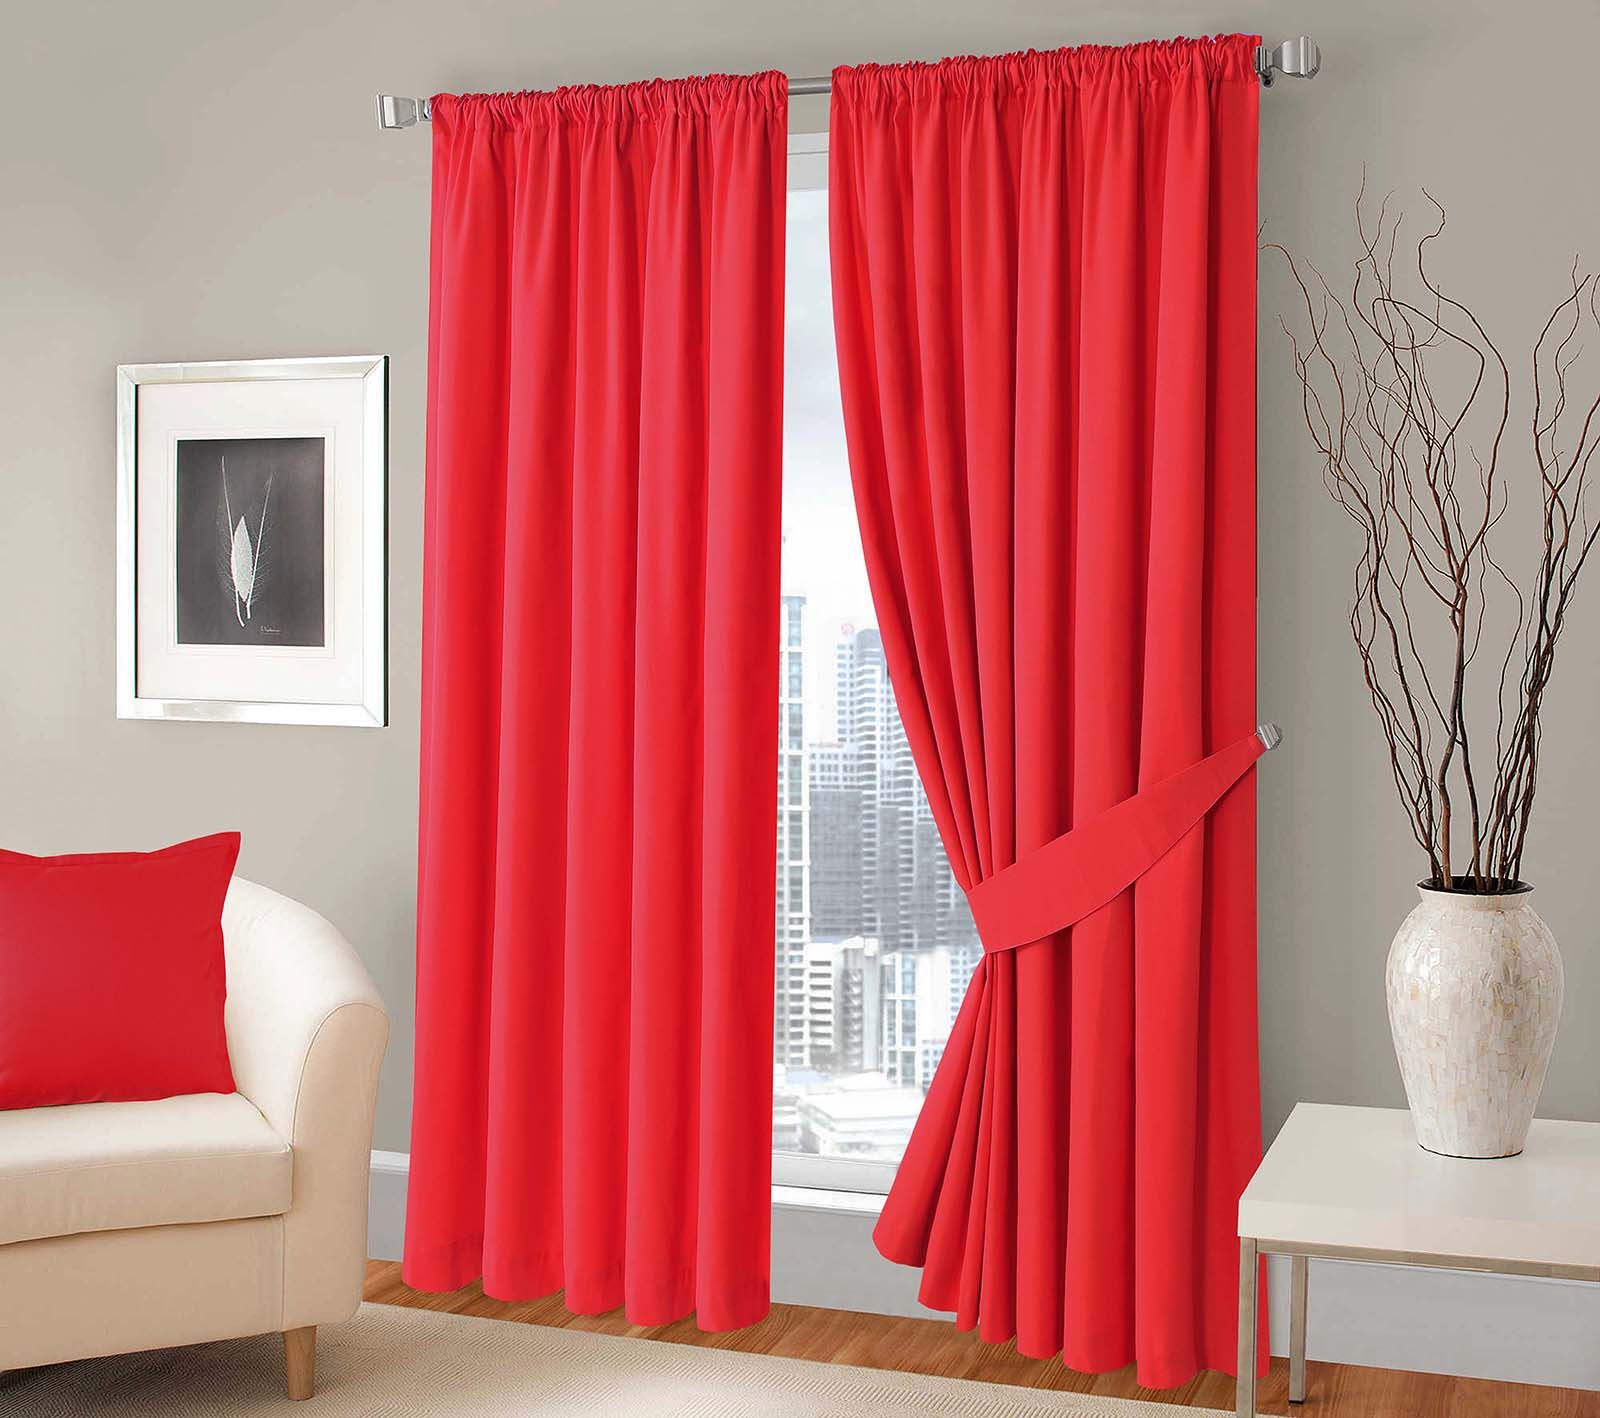 Blackout curtains liners